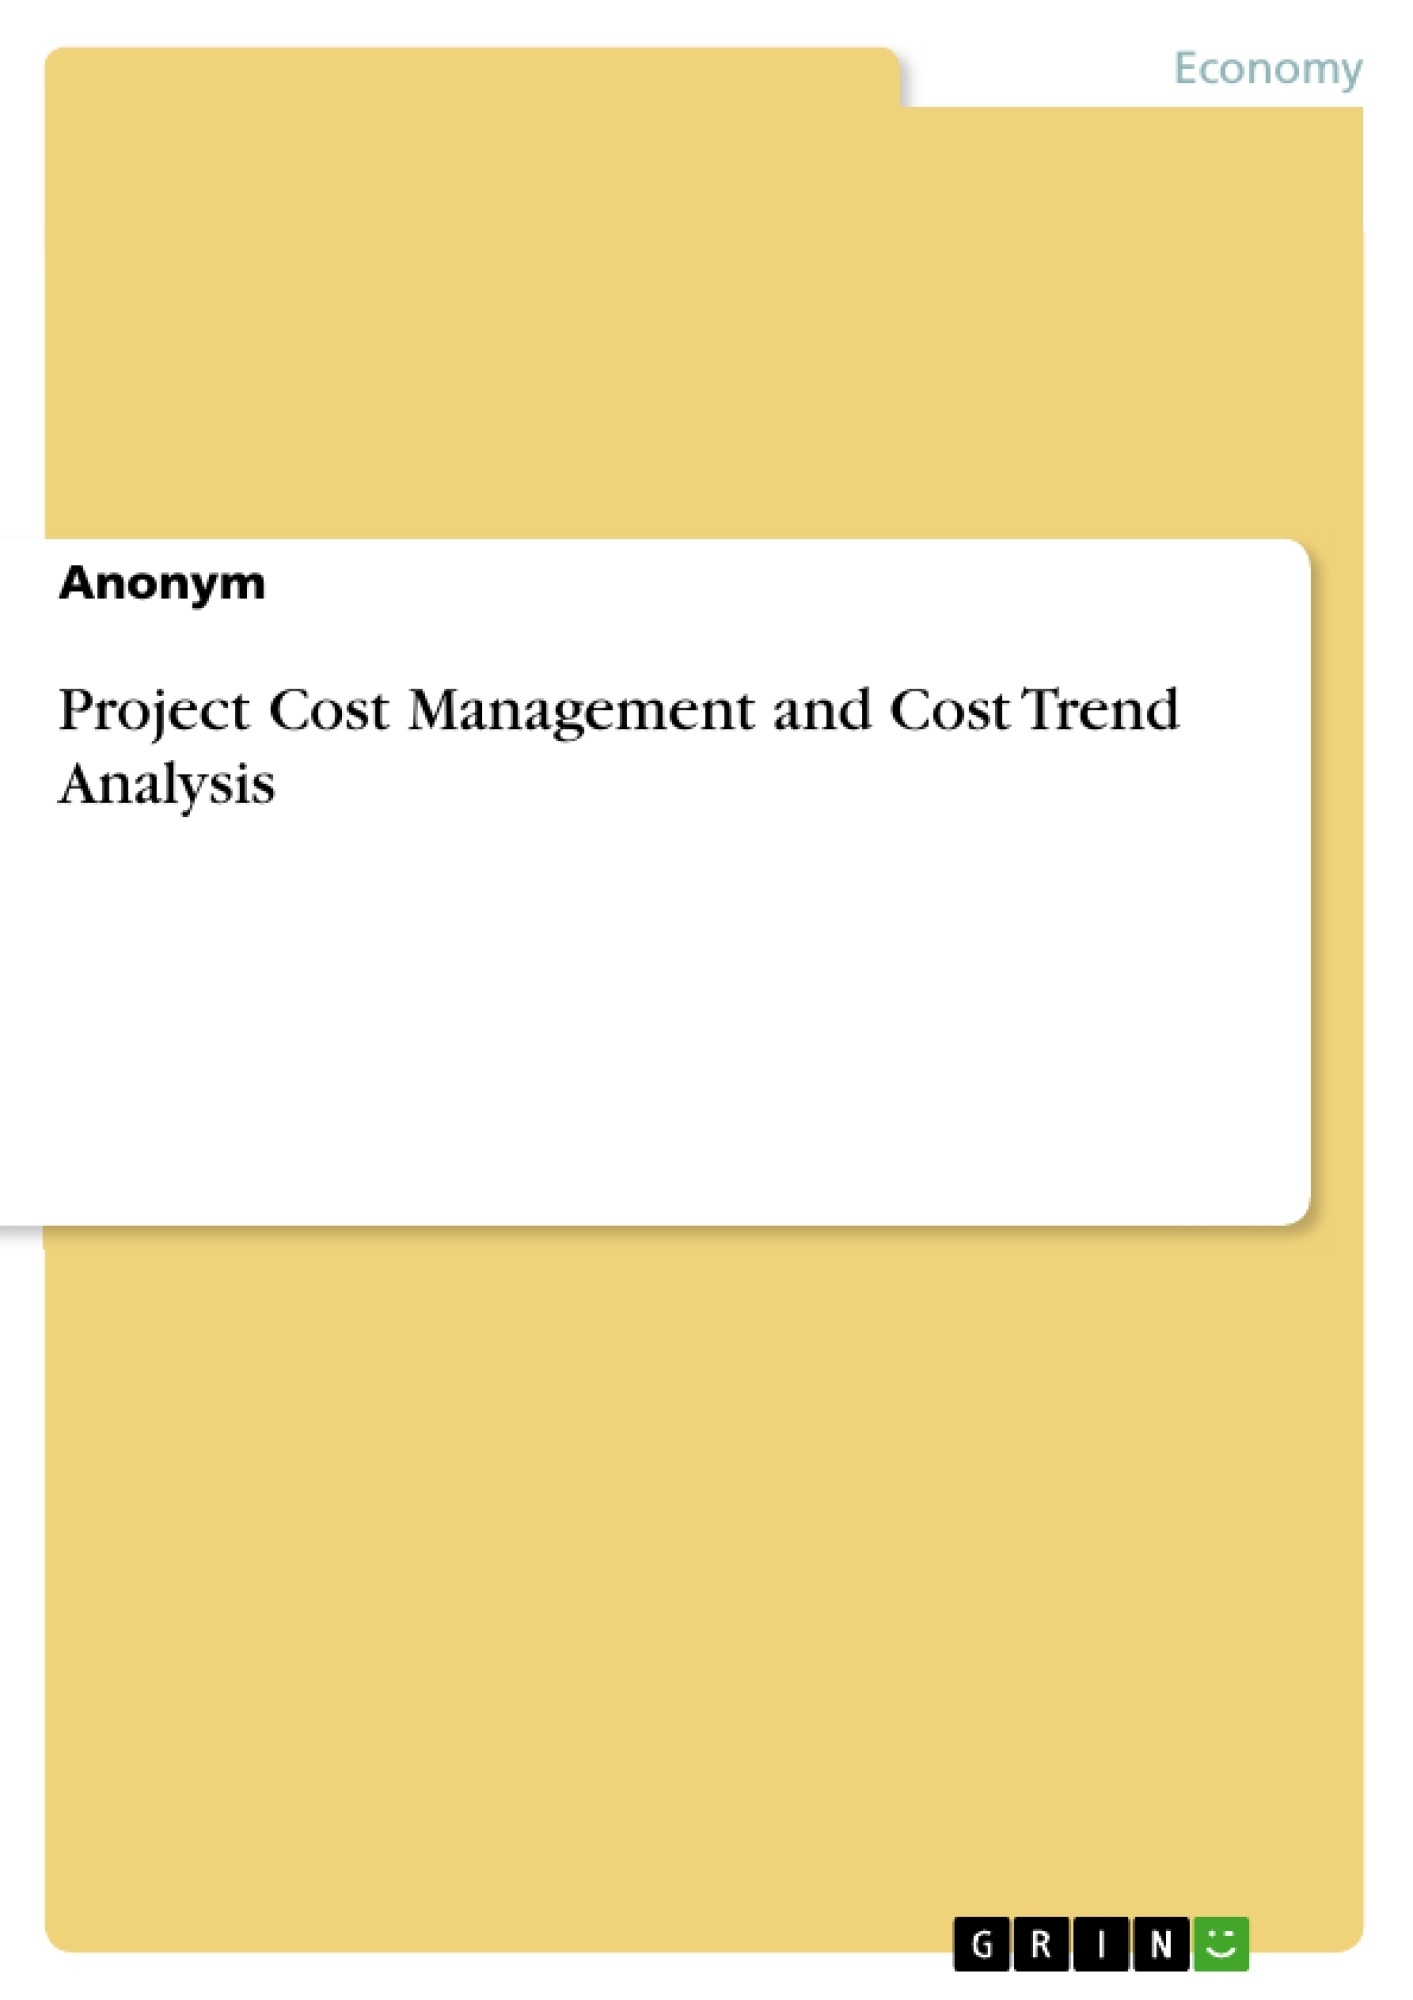 GRIN - Project Cost Management and Cost Trend Analysis